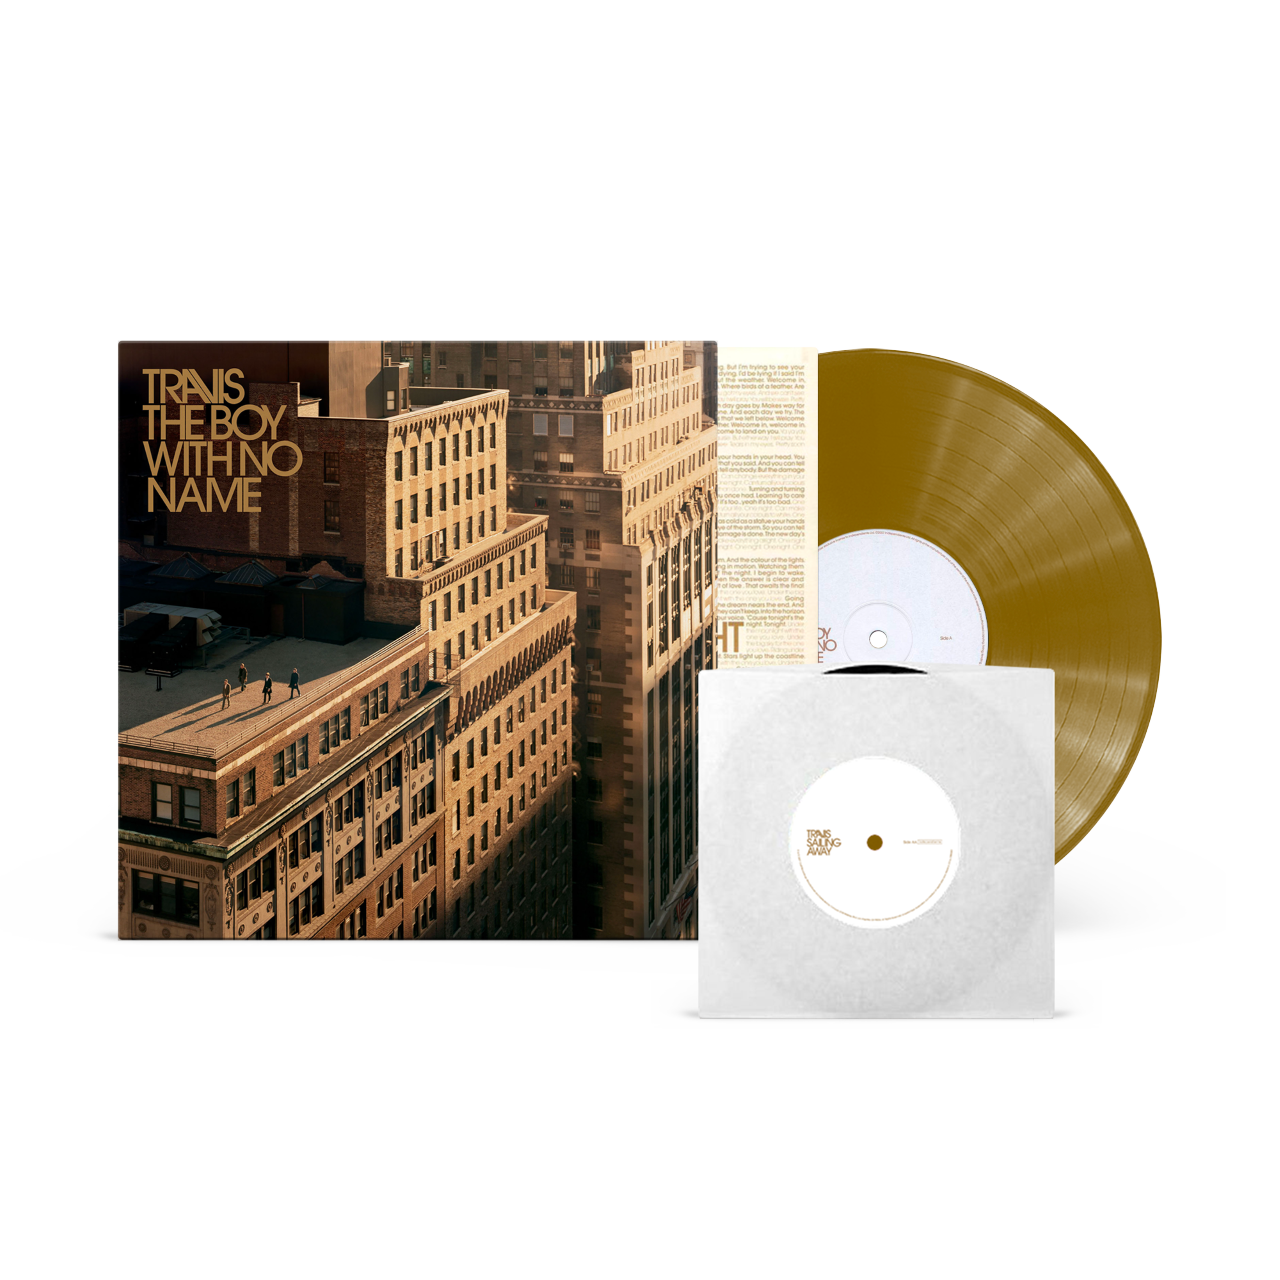 Buy Online Travis - The Boy With No Name Gold Vinyl + 7-Inch (Exclusive, Ltd Edition)